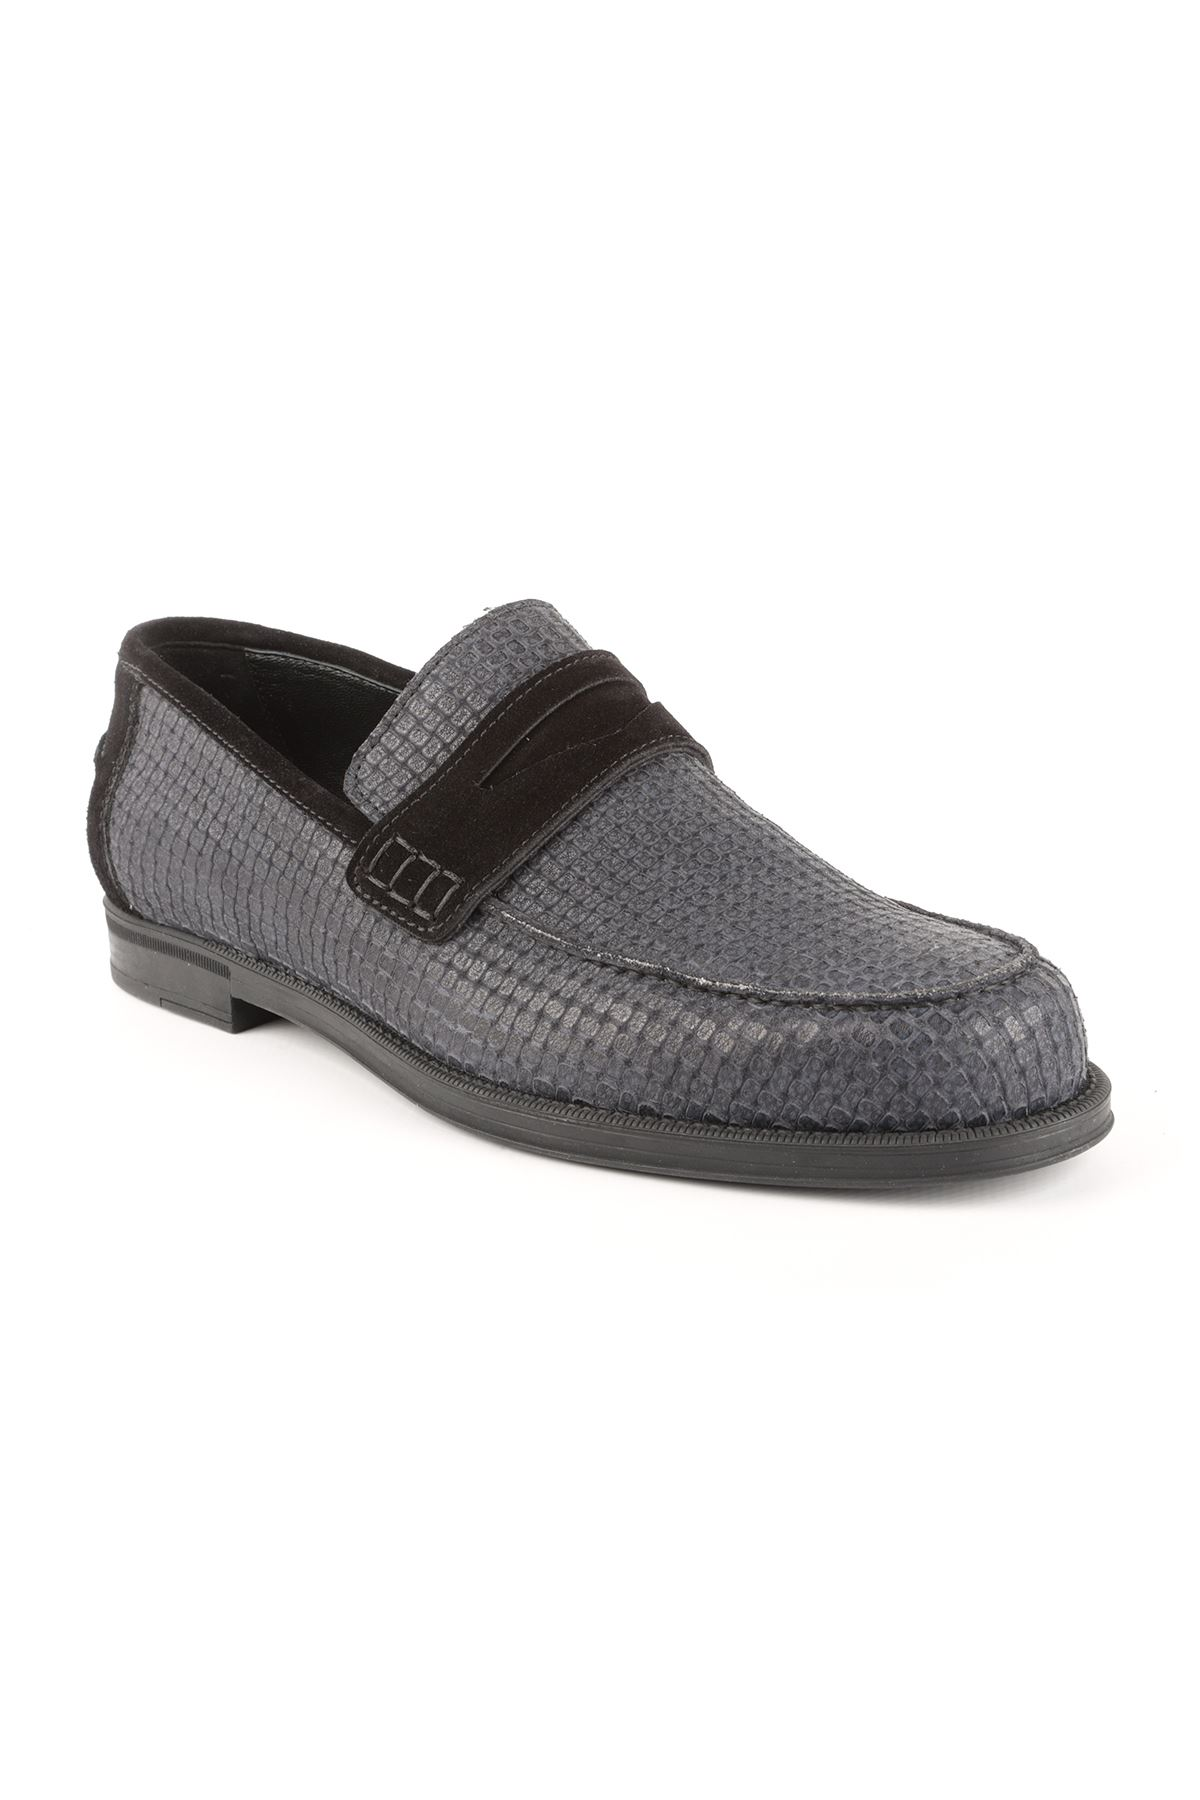 Libero T1412 Navy Blue Loafer Shoes